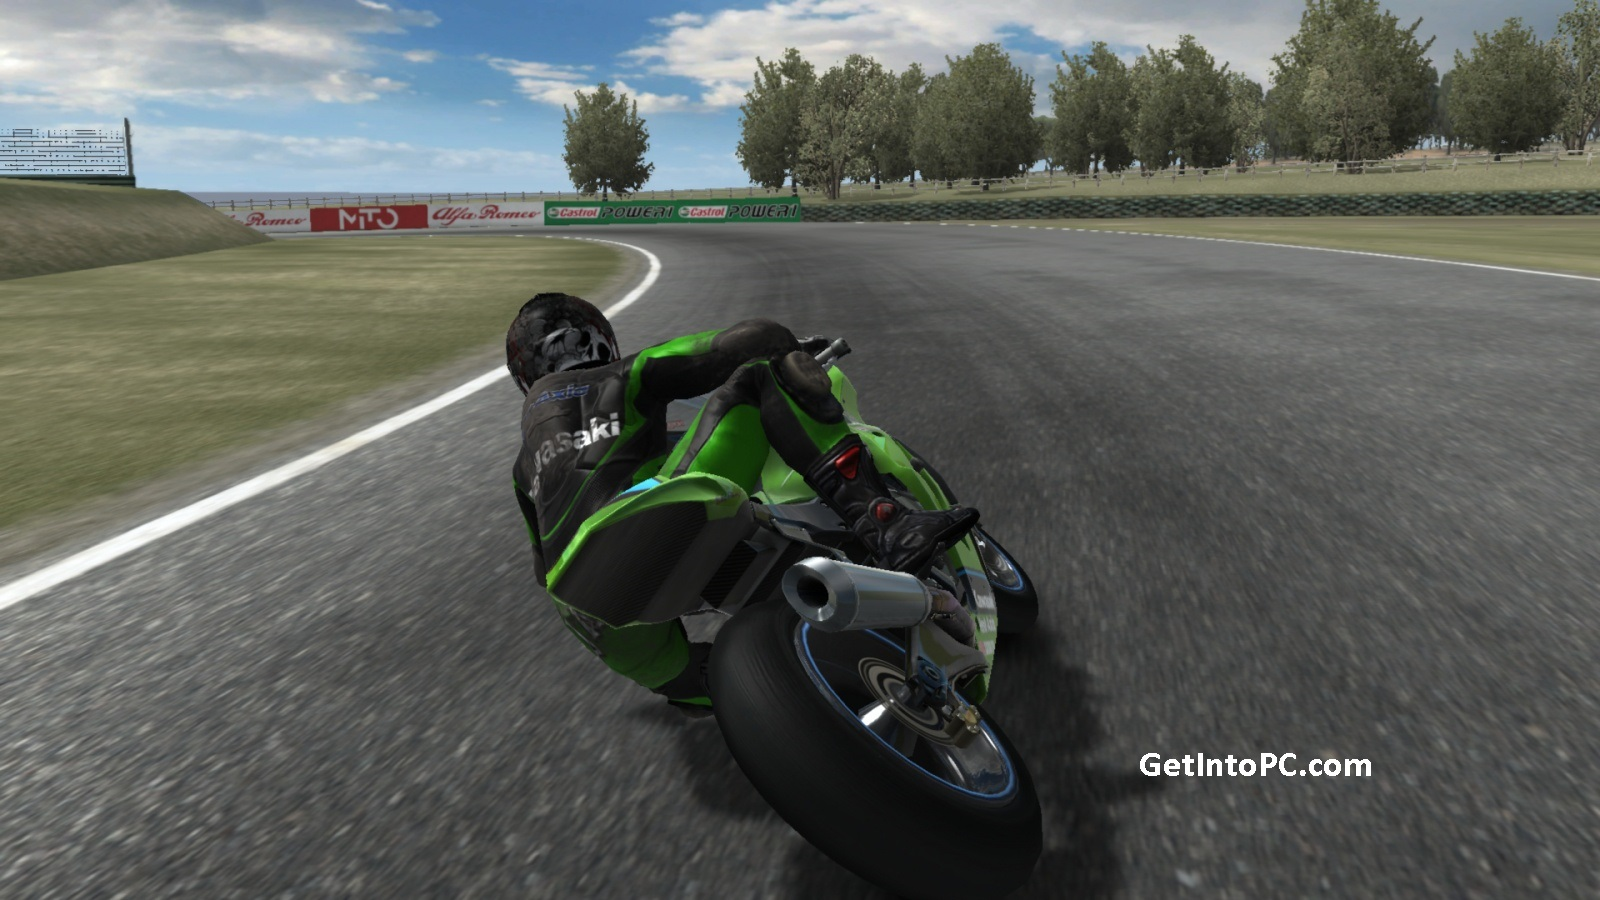 Bikes Racing Games This Bike racing game has